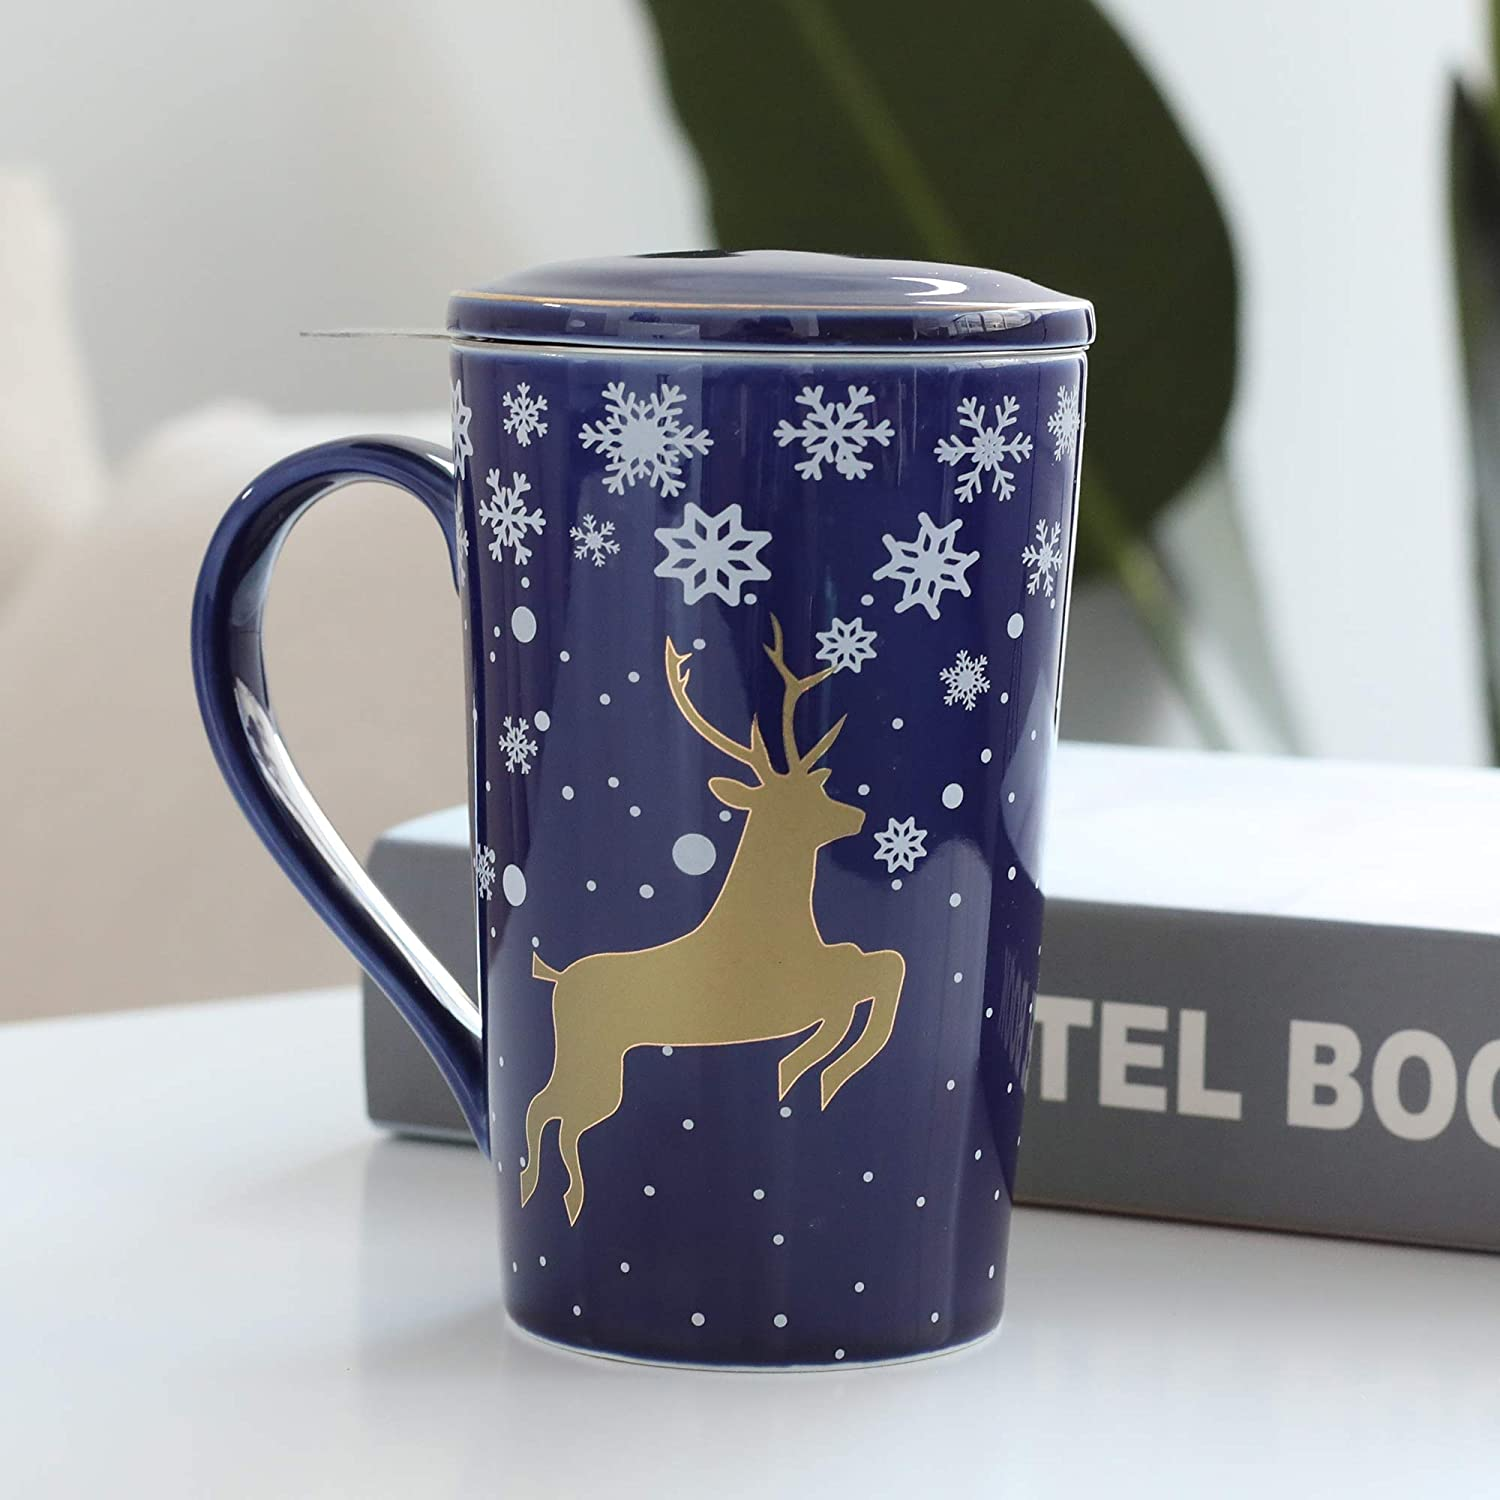 TEANAGOO M58-11 Bone China Tea-Mug with Diffuser and Lid Best Gift for Christmas /& New Year Blue Golden Deer 18 OZ